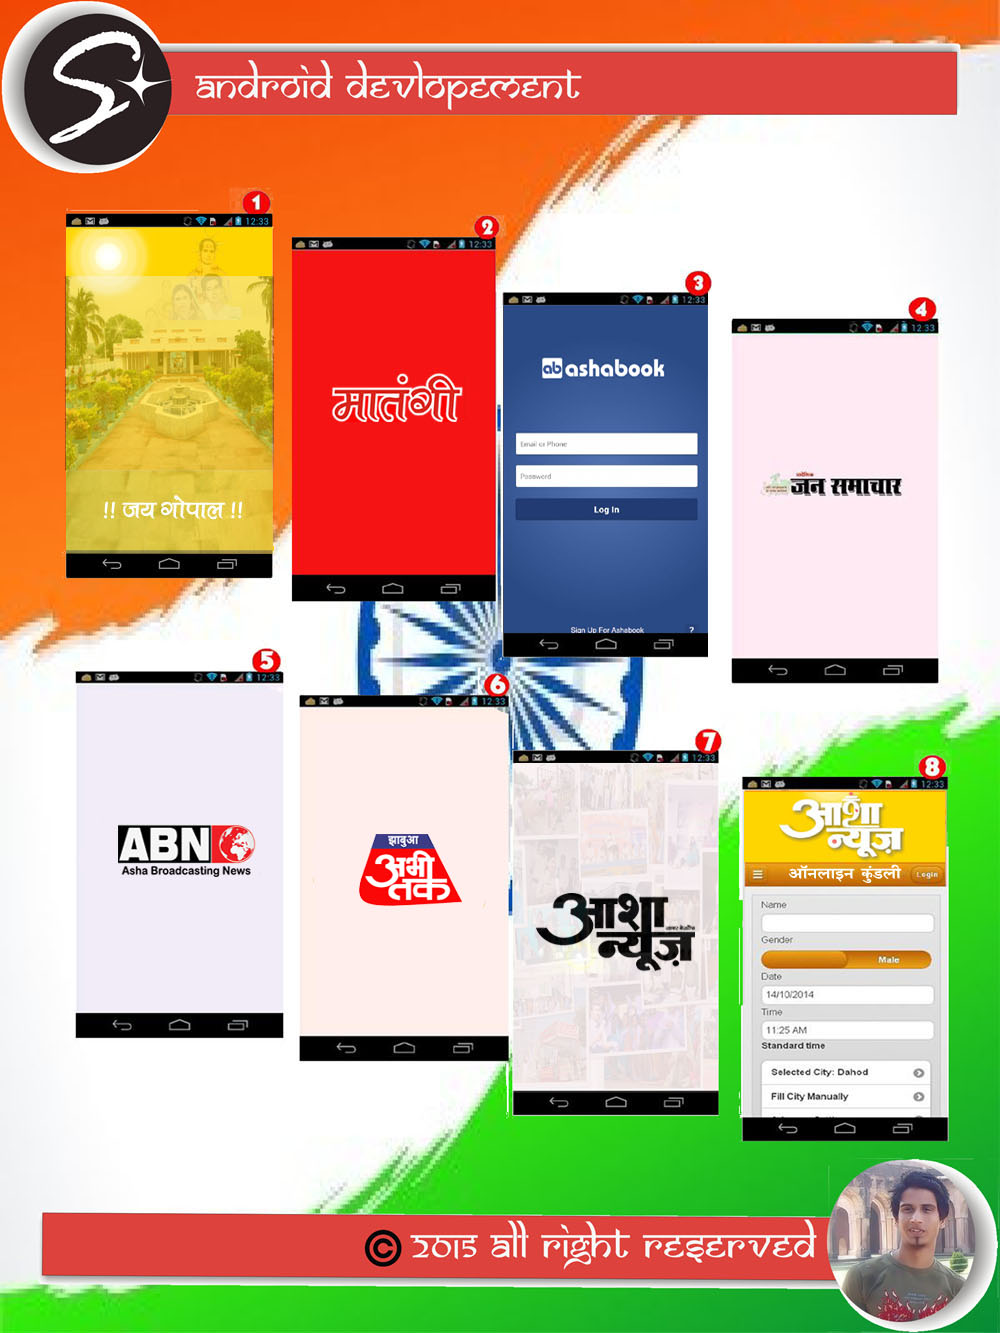 Android Developement india, Native Mobile App Development Services